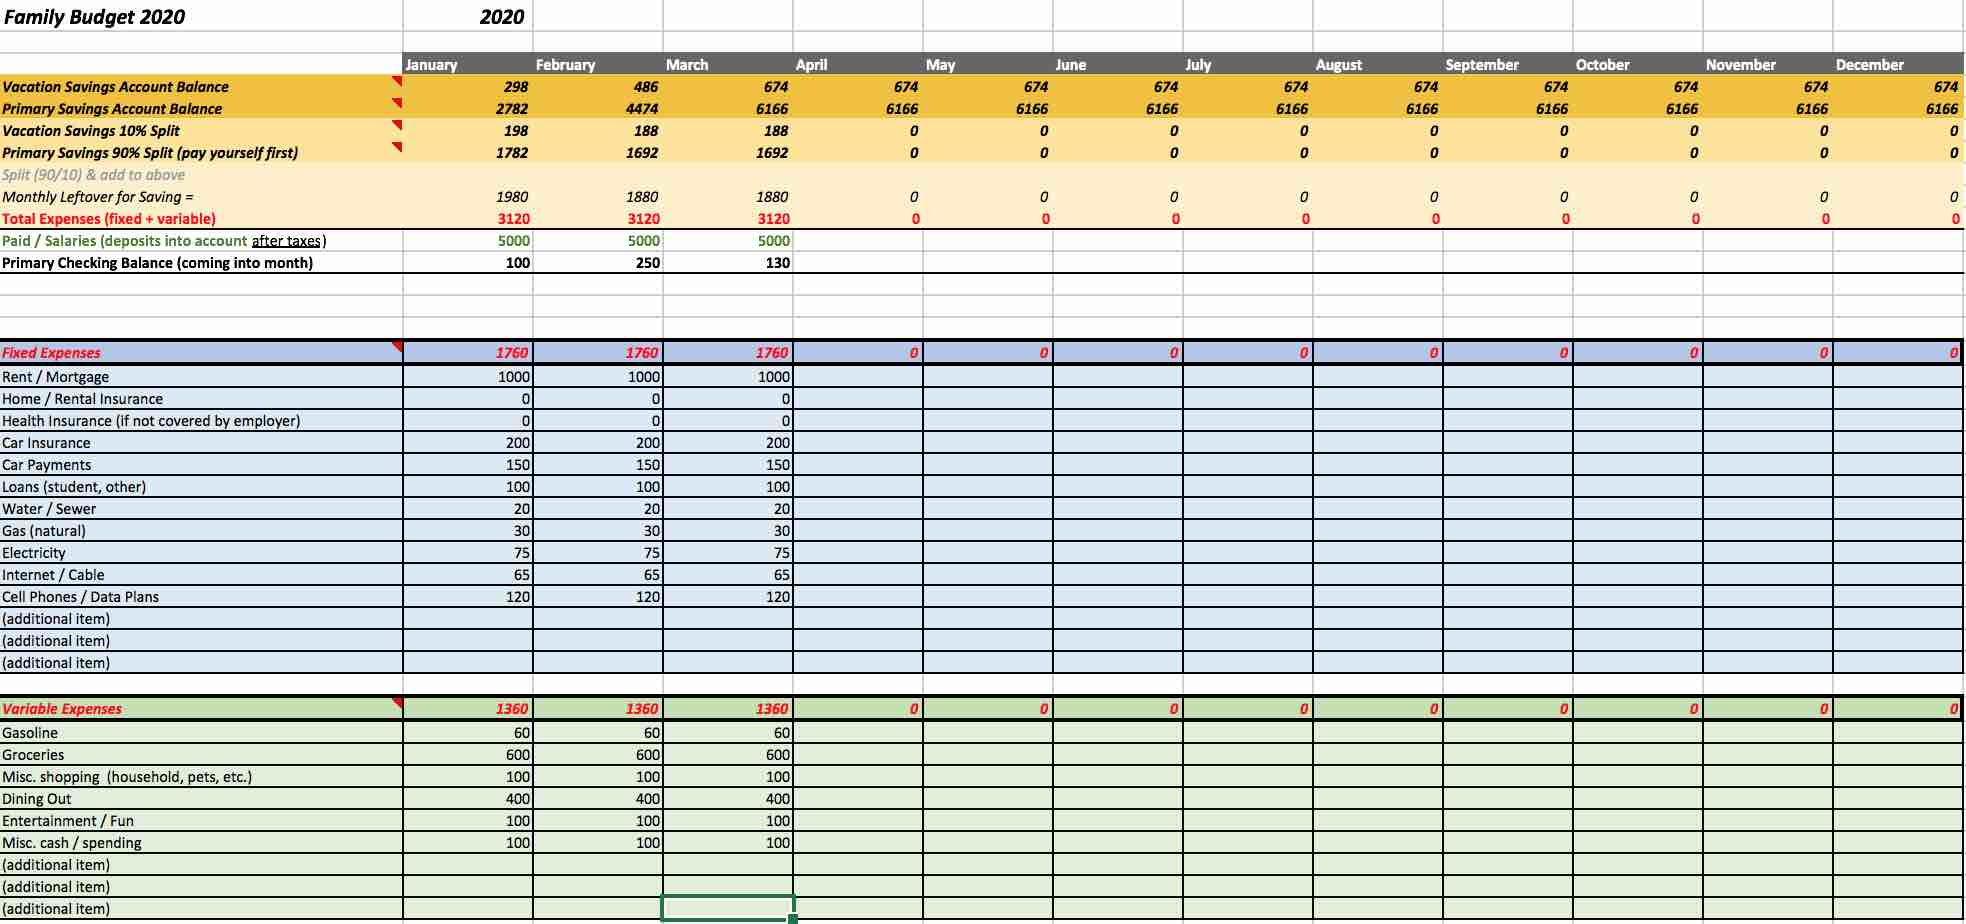 Excel budget template sample to save for a trip - download a copy free